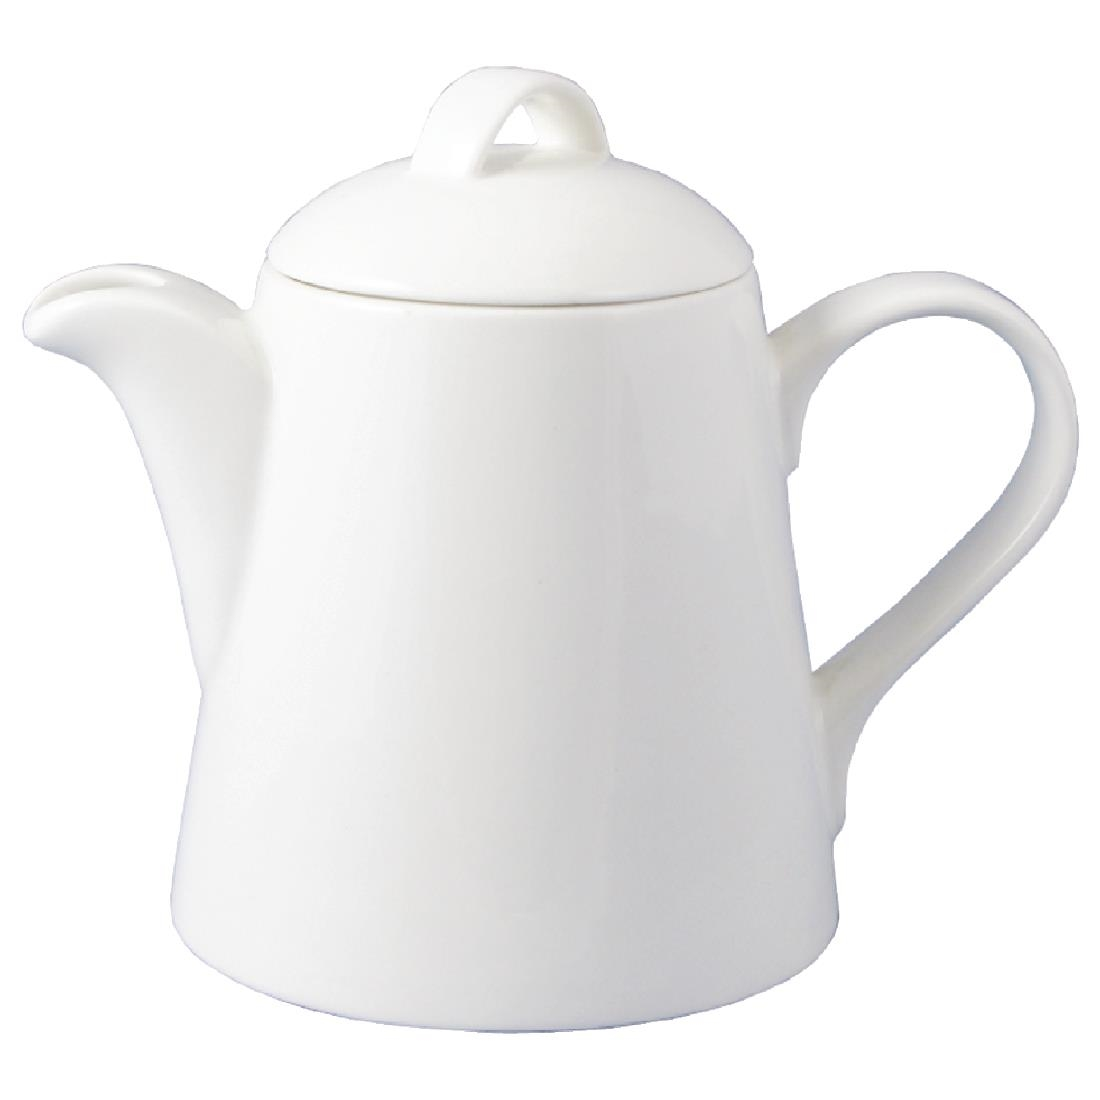 Image of Dudson Classic Beverage Pots 650ml (Pack of 6) Pack of 6